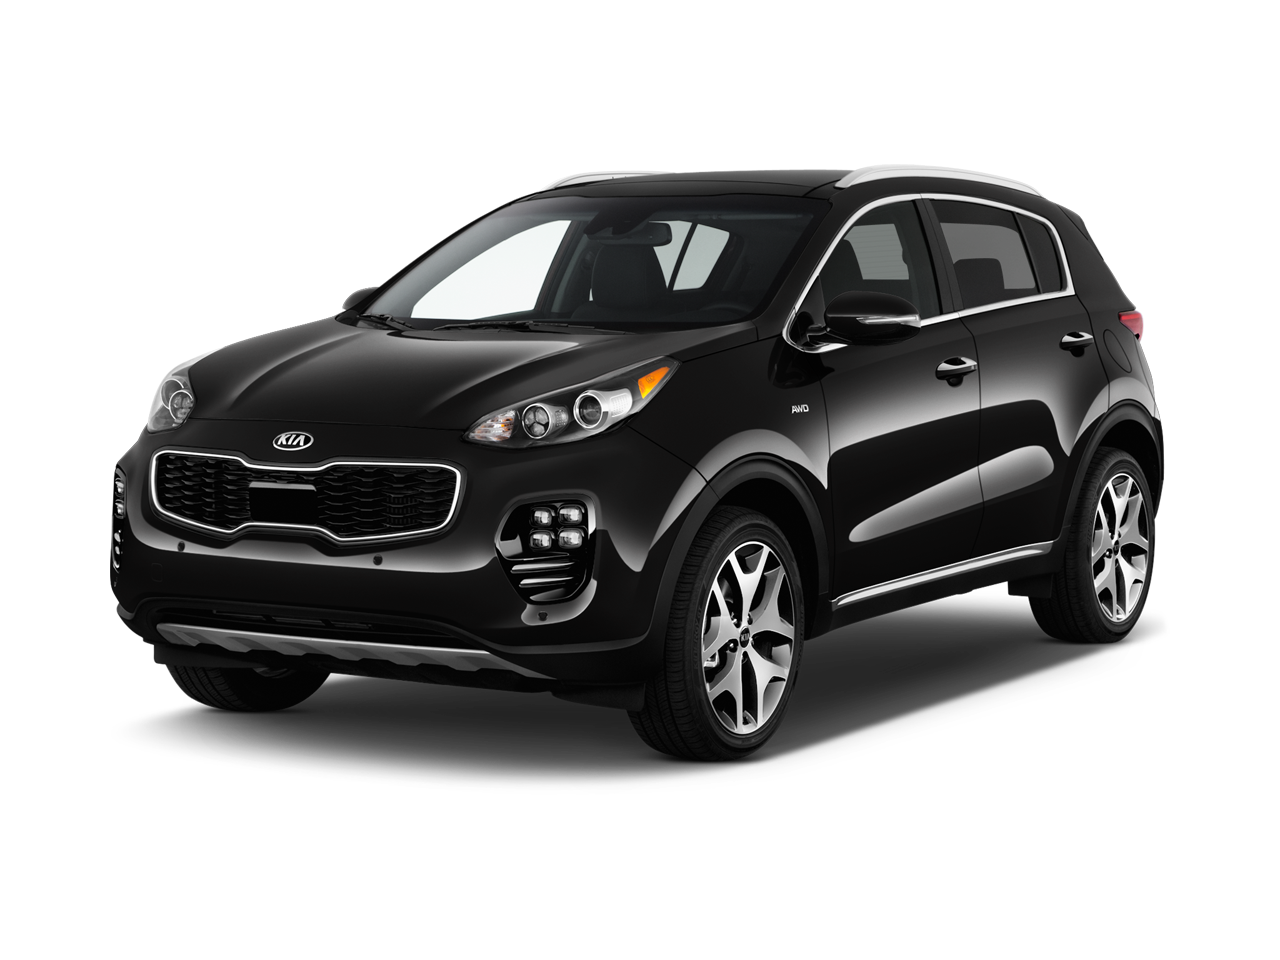 new 2017 kia sportage ex near kailua kona hi aloha kia kona. Black Bedroom Furniture Sets. Home Design Ideas